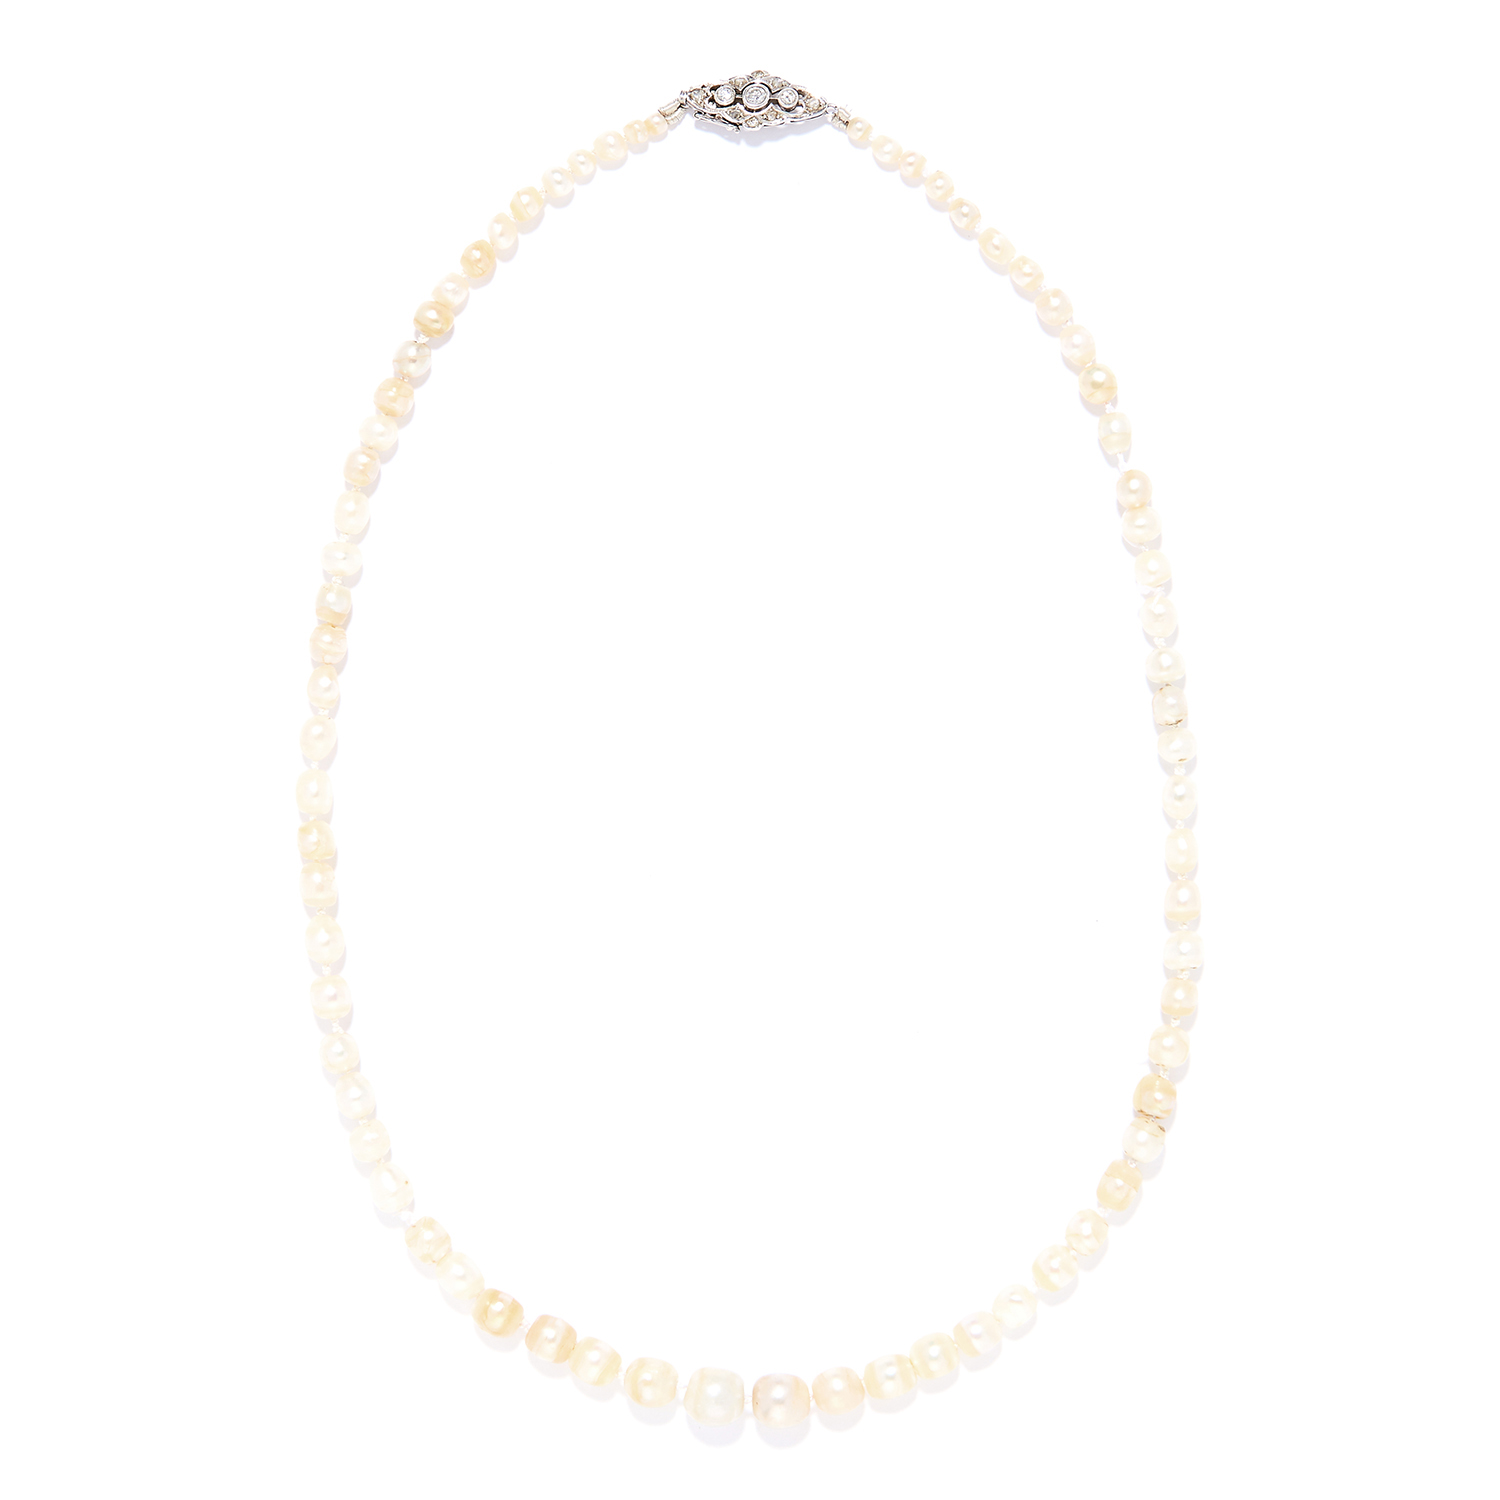 ANTIQUE NATURAL PEARL AND DIAMOND NECKLACE in platinum or white gold, comprising a single row of